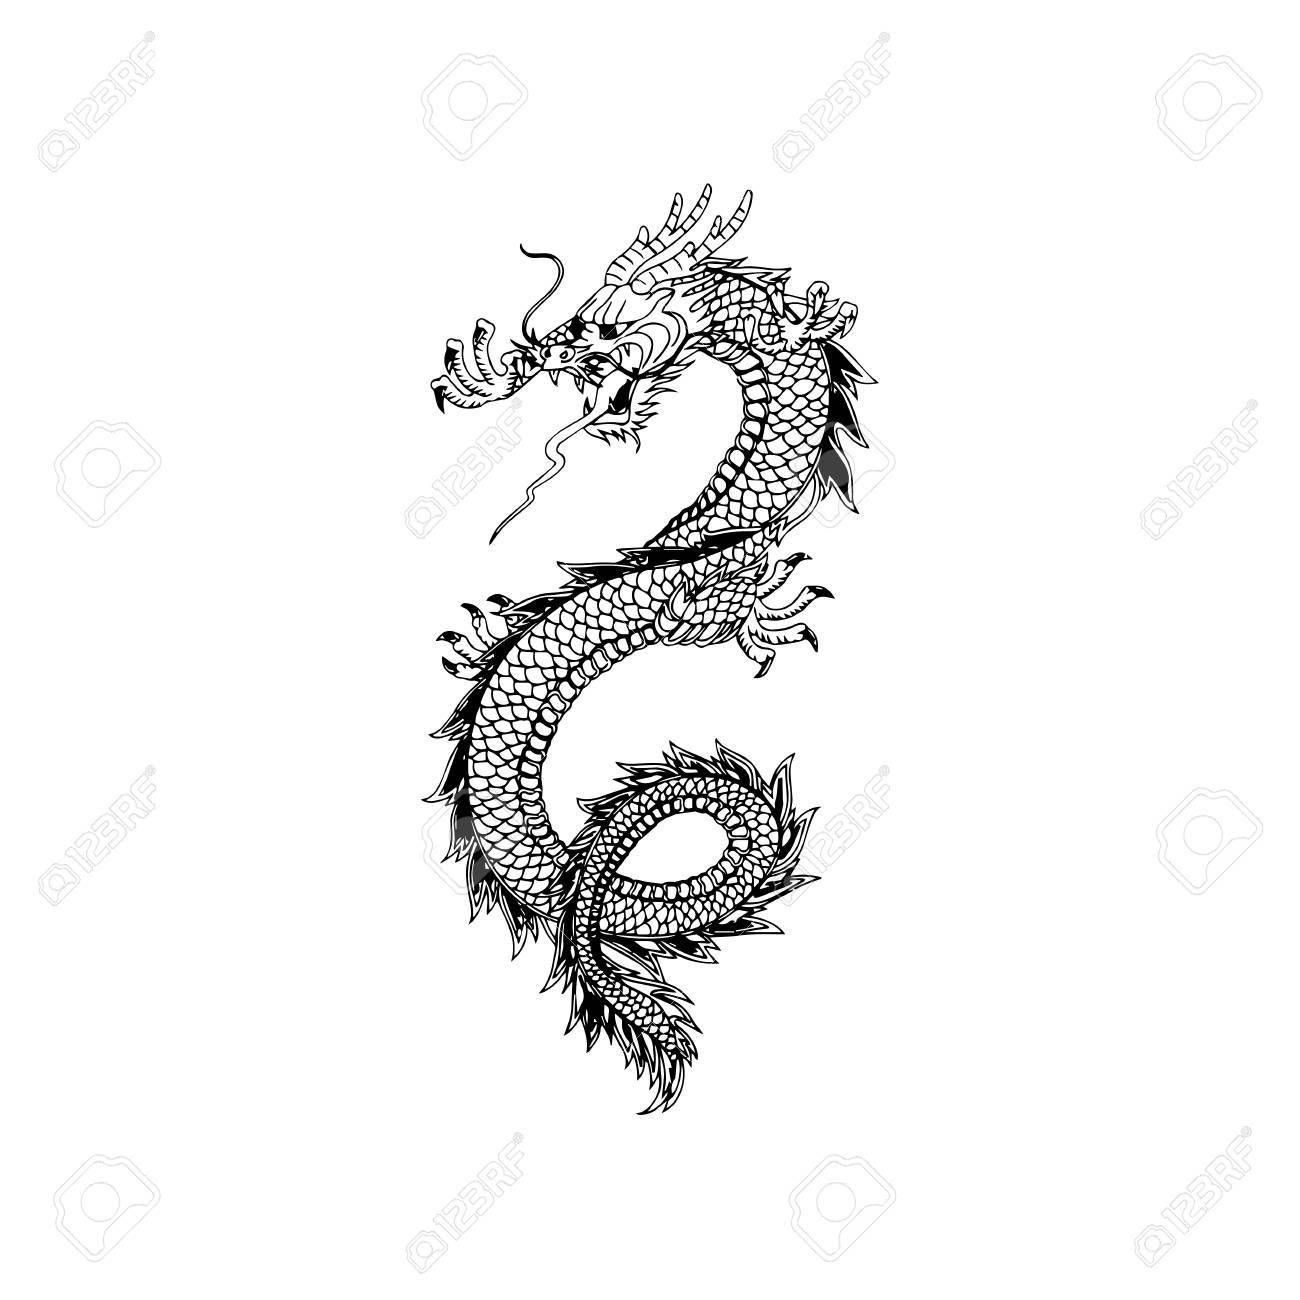 Photo of Chinese dragon tattoo design